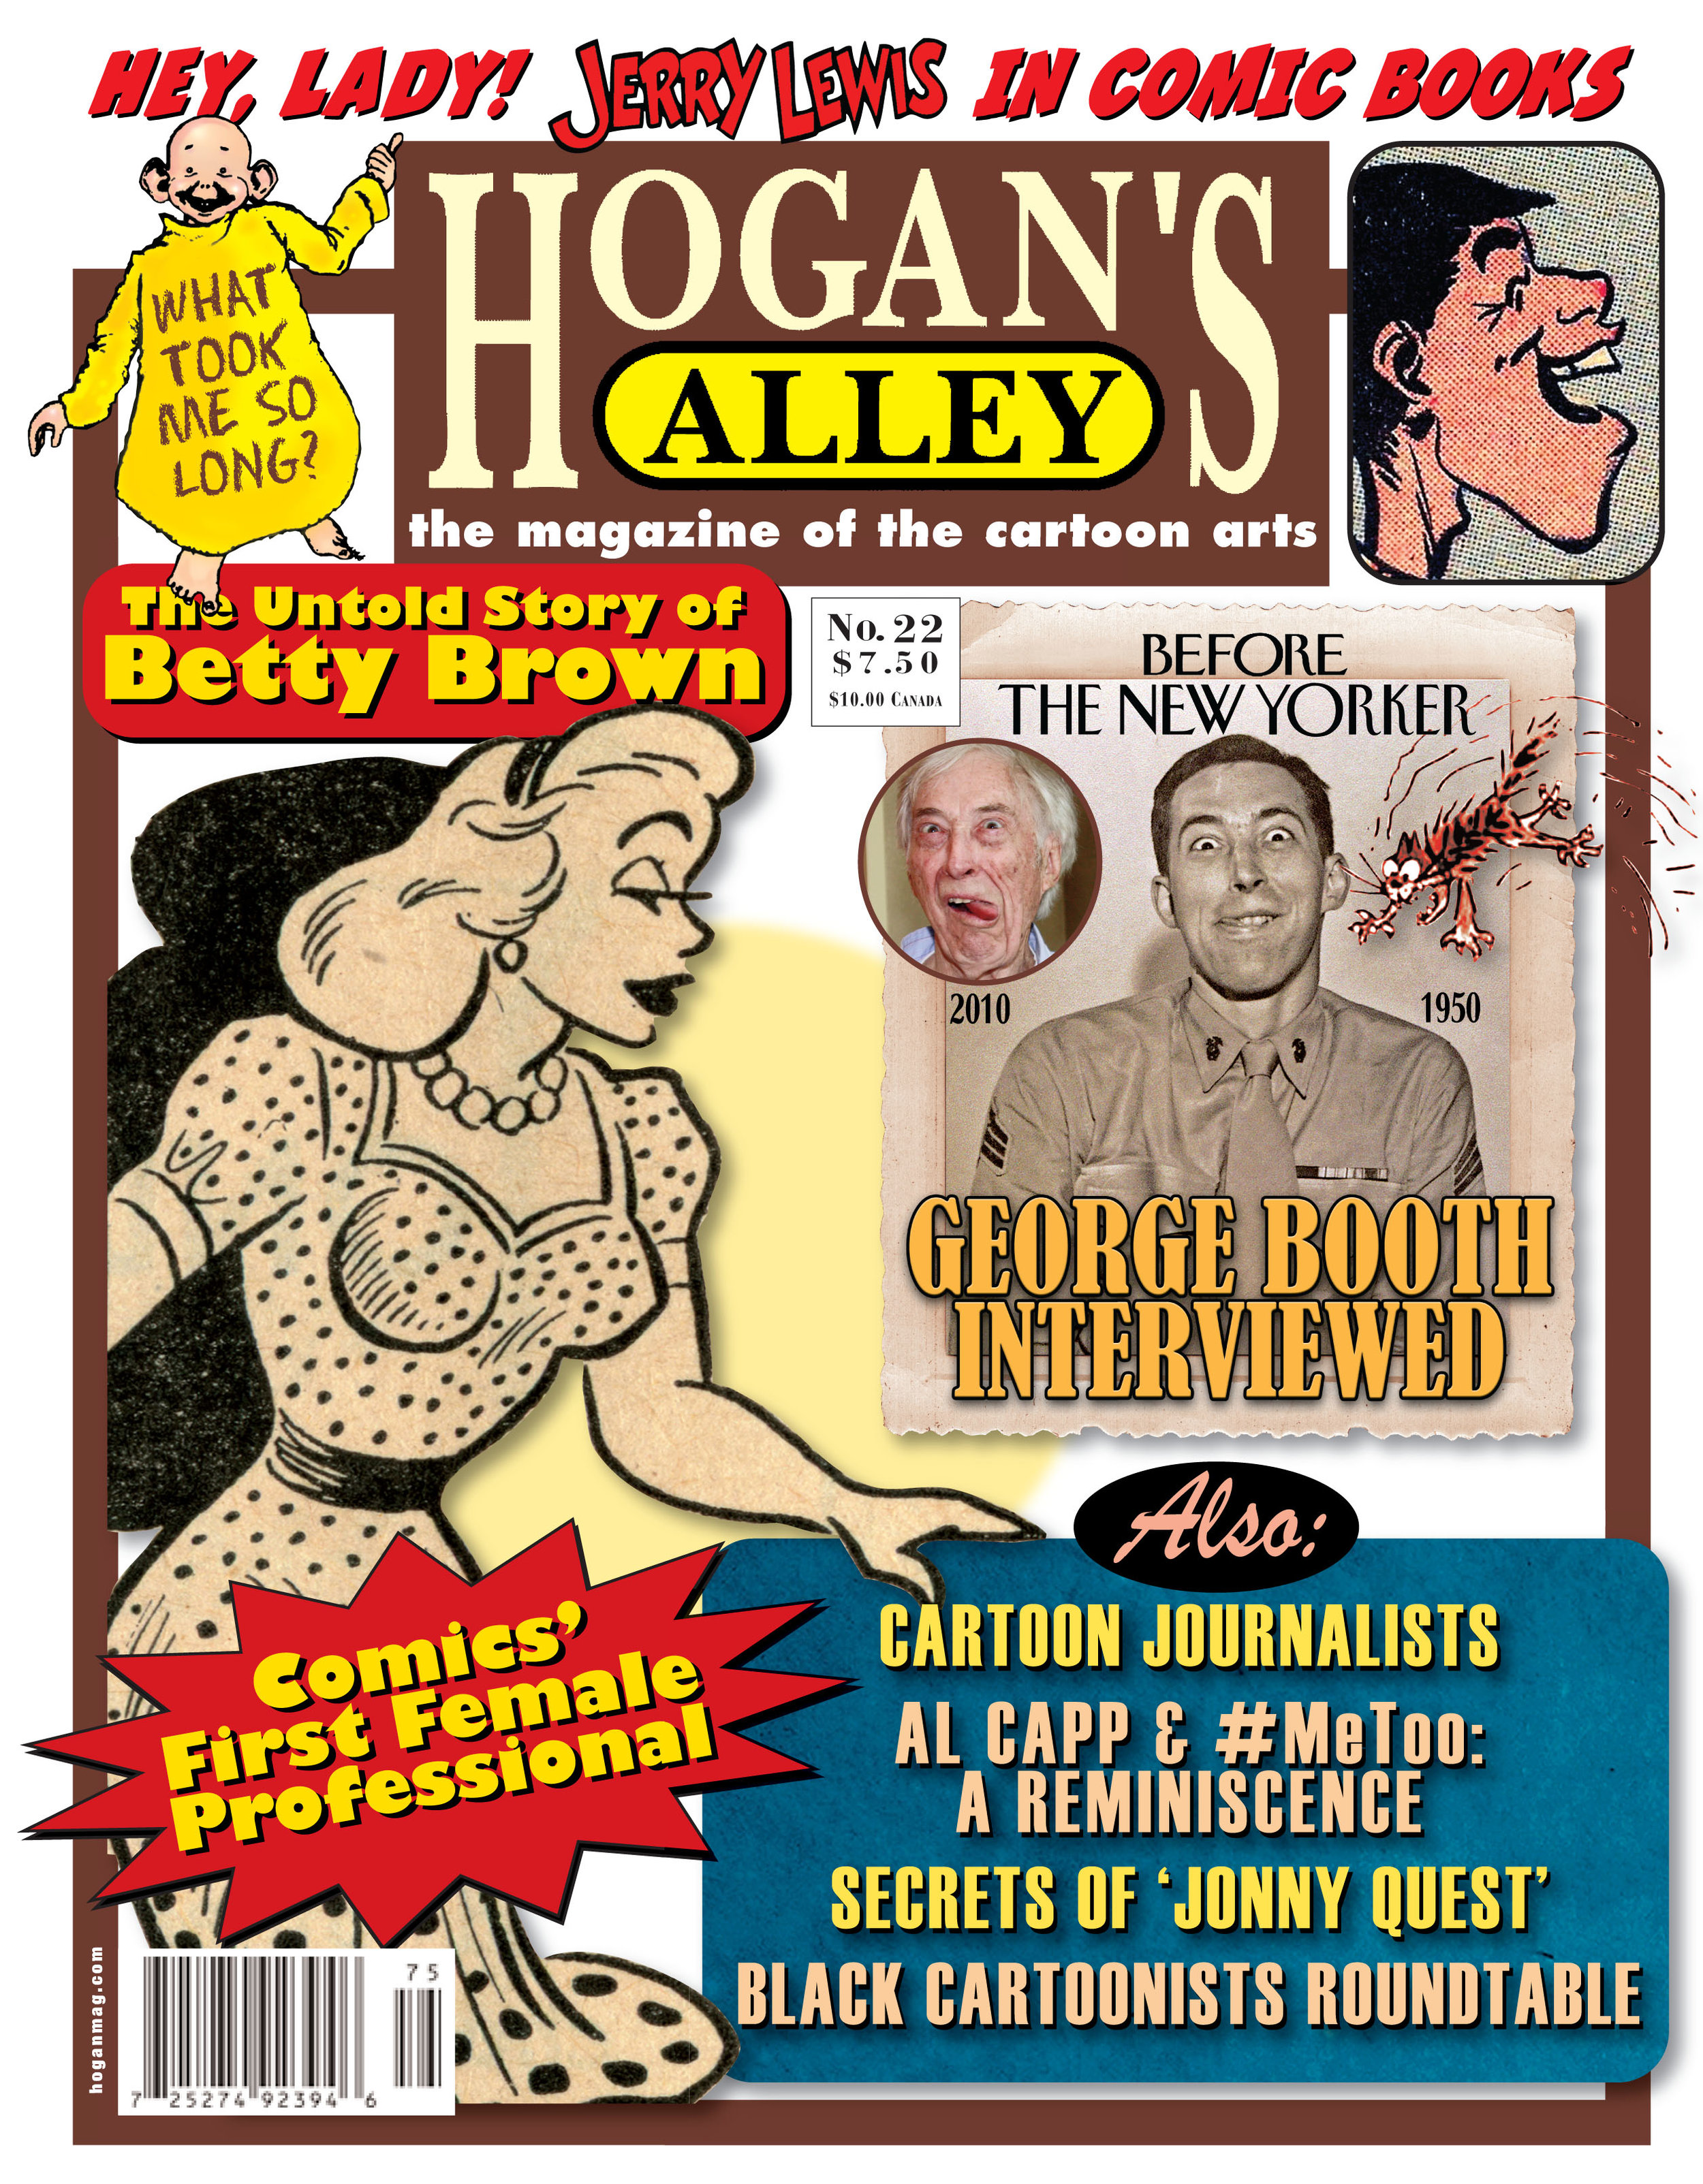 To purchase a physical copy of  Hogan's Alley  #22, which includes the full text of this article and much more artwork not seen here, just click the cover image!